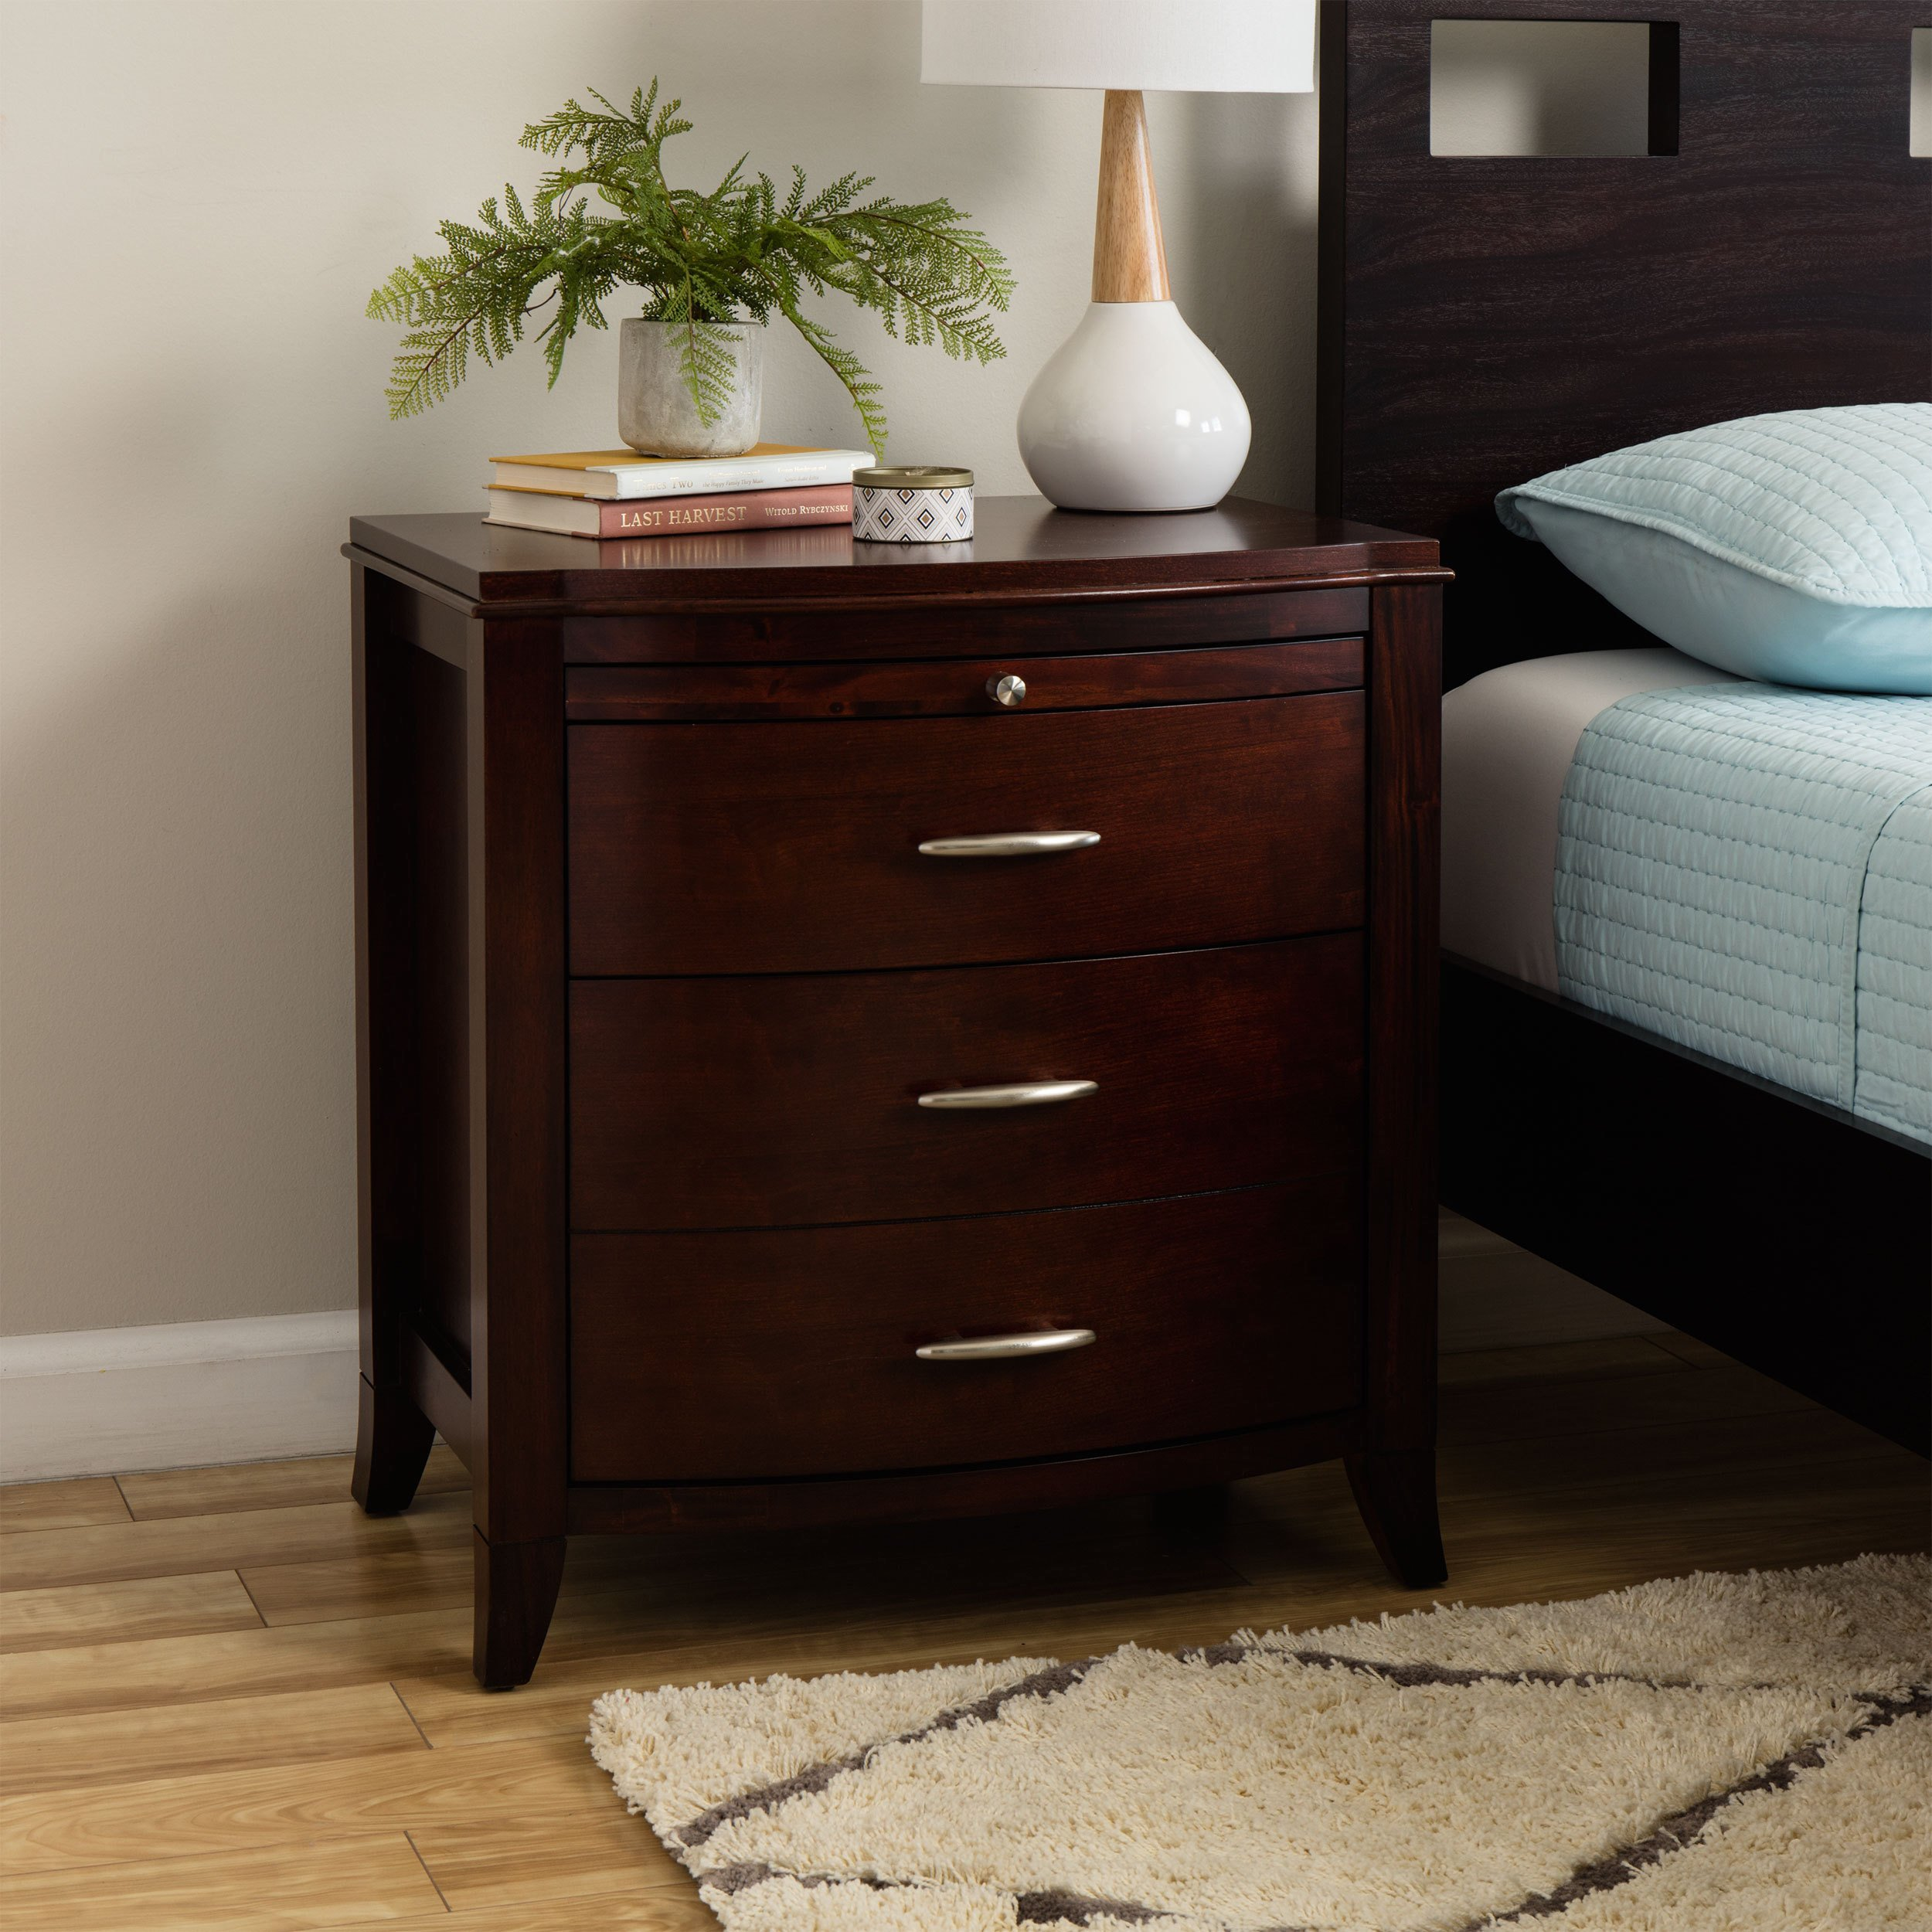 drawer bow front nightstand with tray and power strip accent table cinnamon free shipping today small bedroom end tables bar pub set coffee white chair creative legs pottery barn